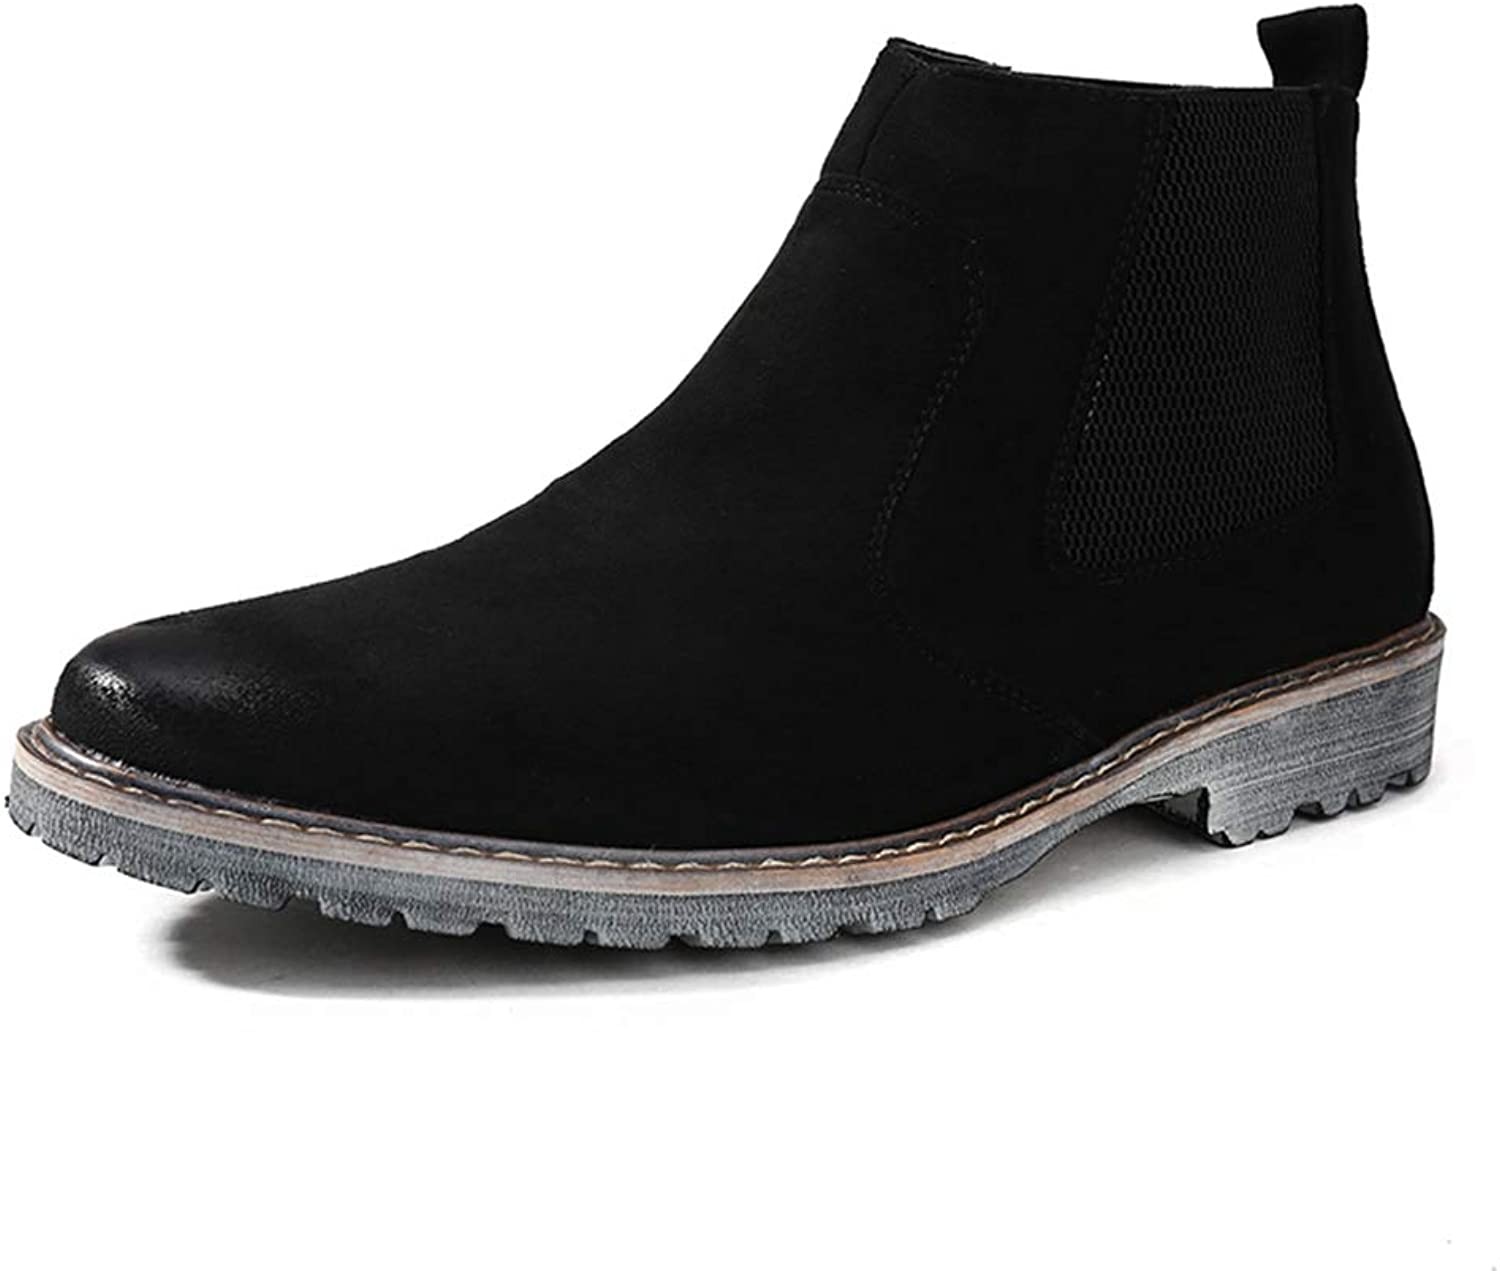 Mens Chelsea Boots Classic Retro Ankle Boots Non-Slip Slip-on Dress shoes Pointed Toe Short Boots